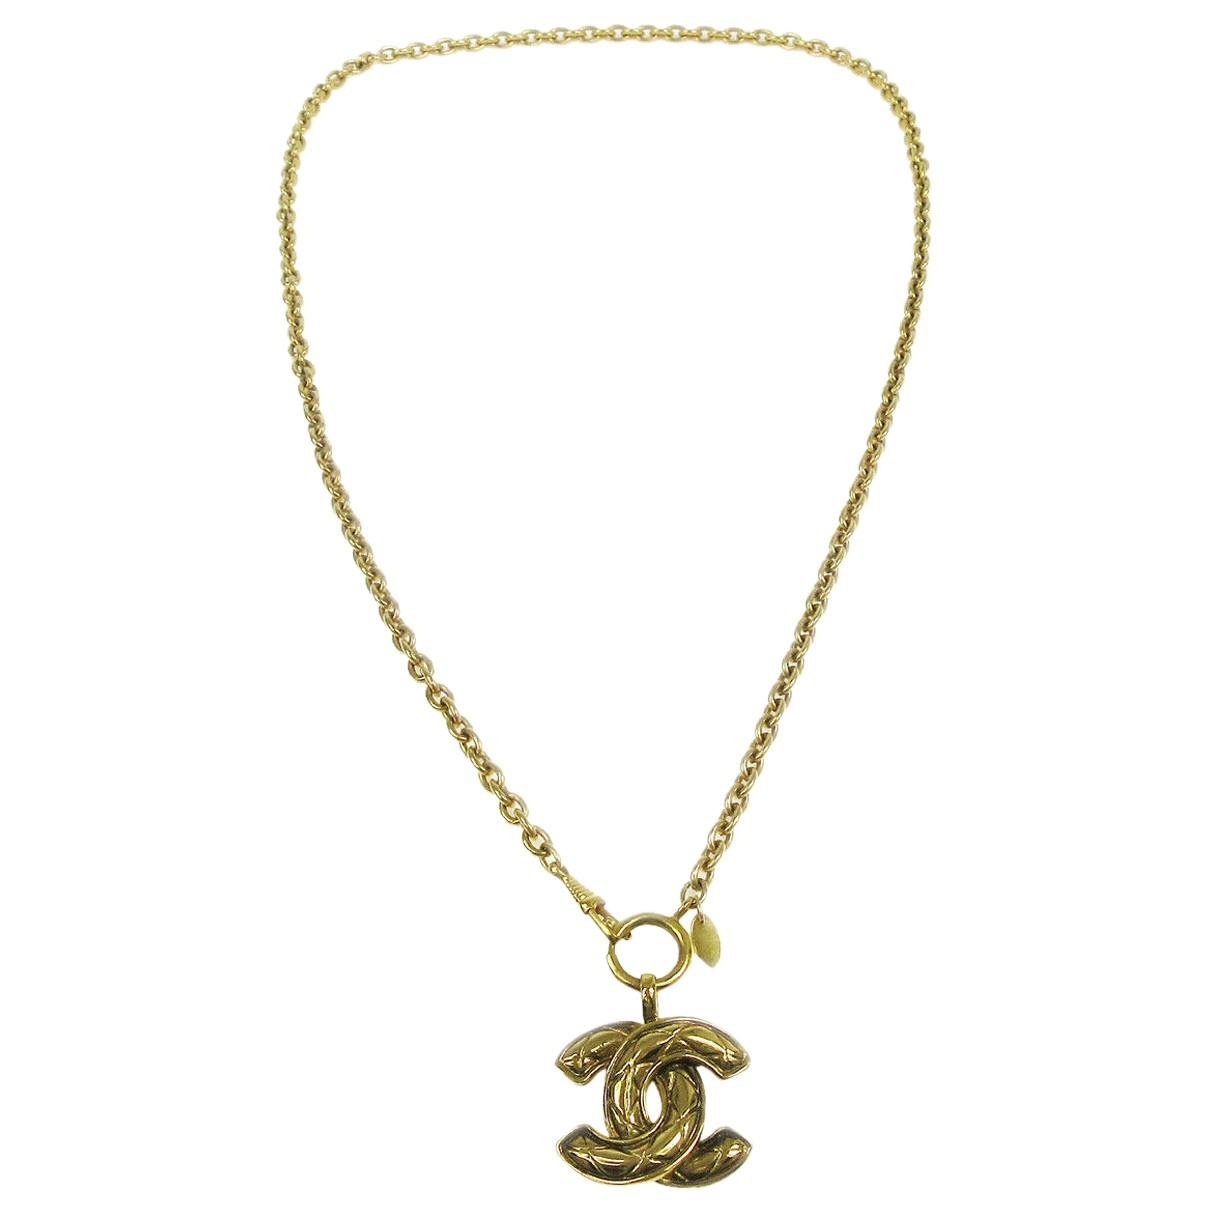 Chanel \N Kette Andere